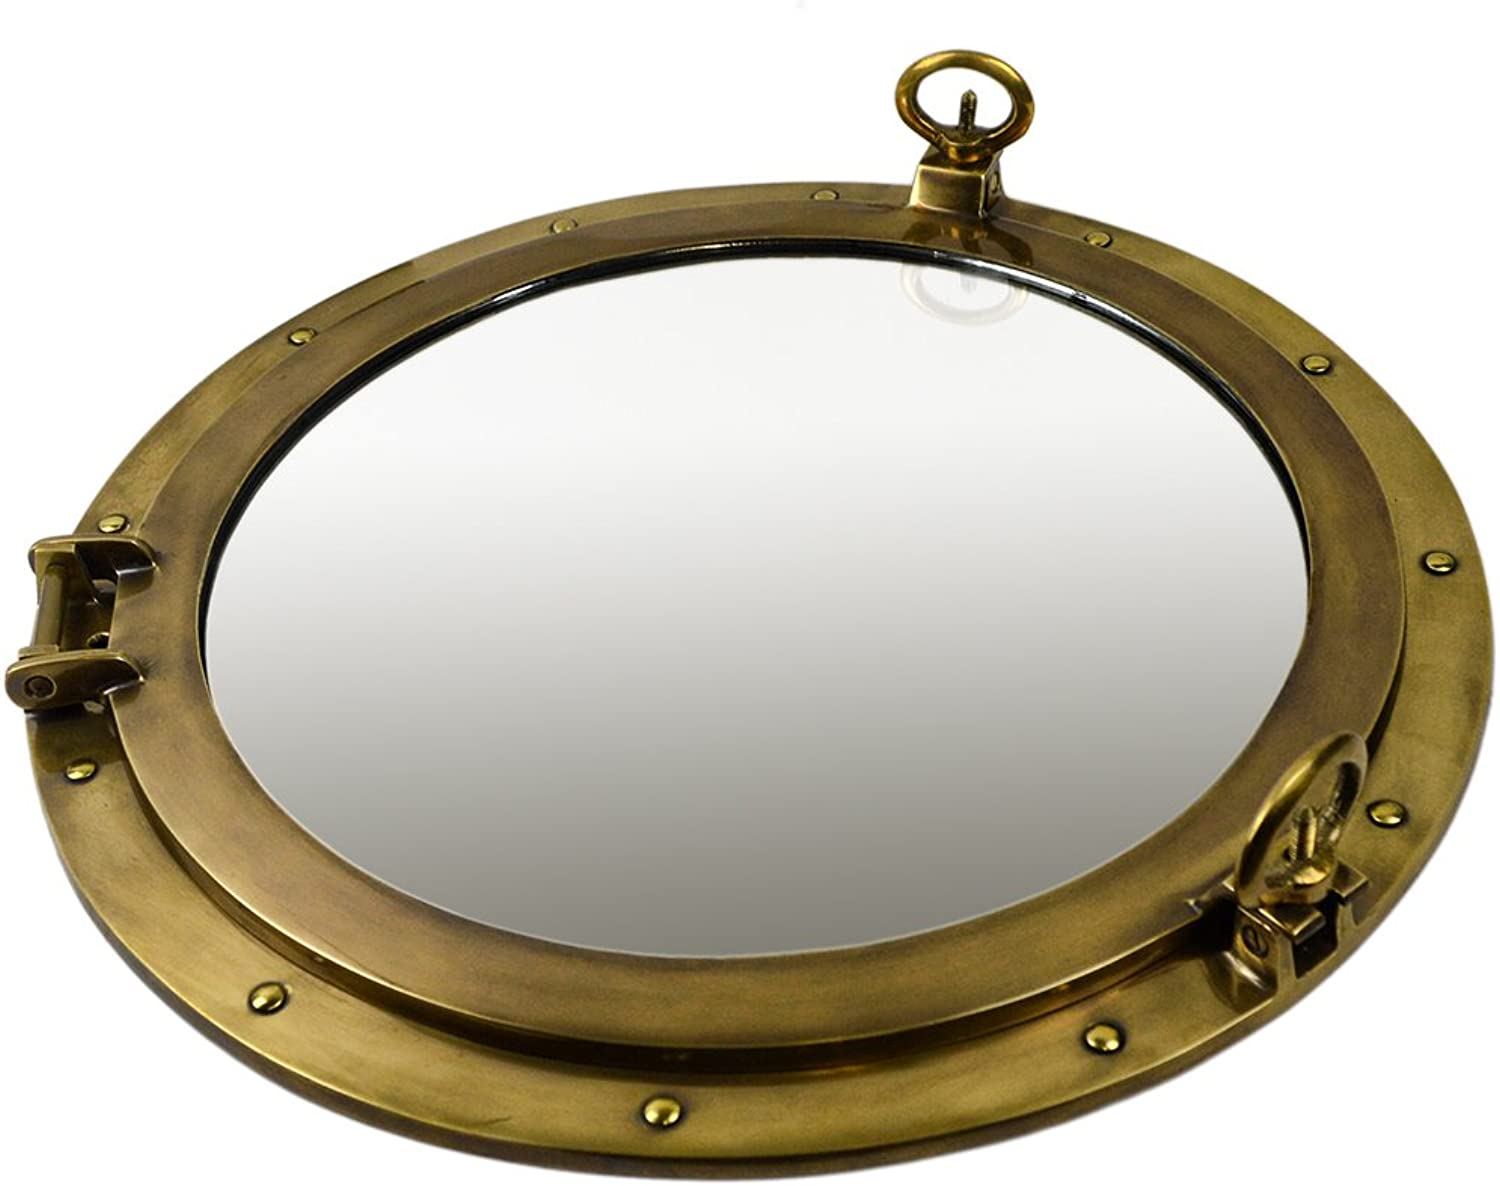 20 Dia Antique Brass Finish over Solid Brass Wall Mount Porthole Mirror